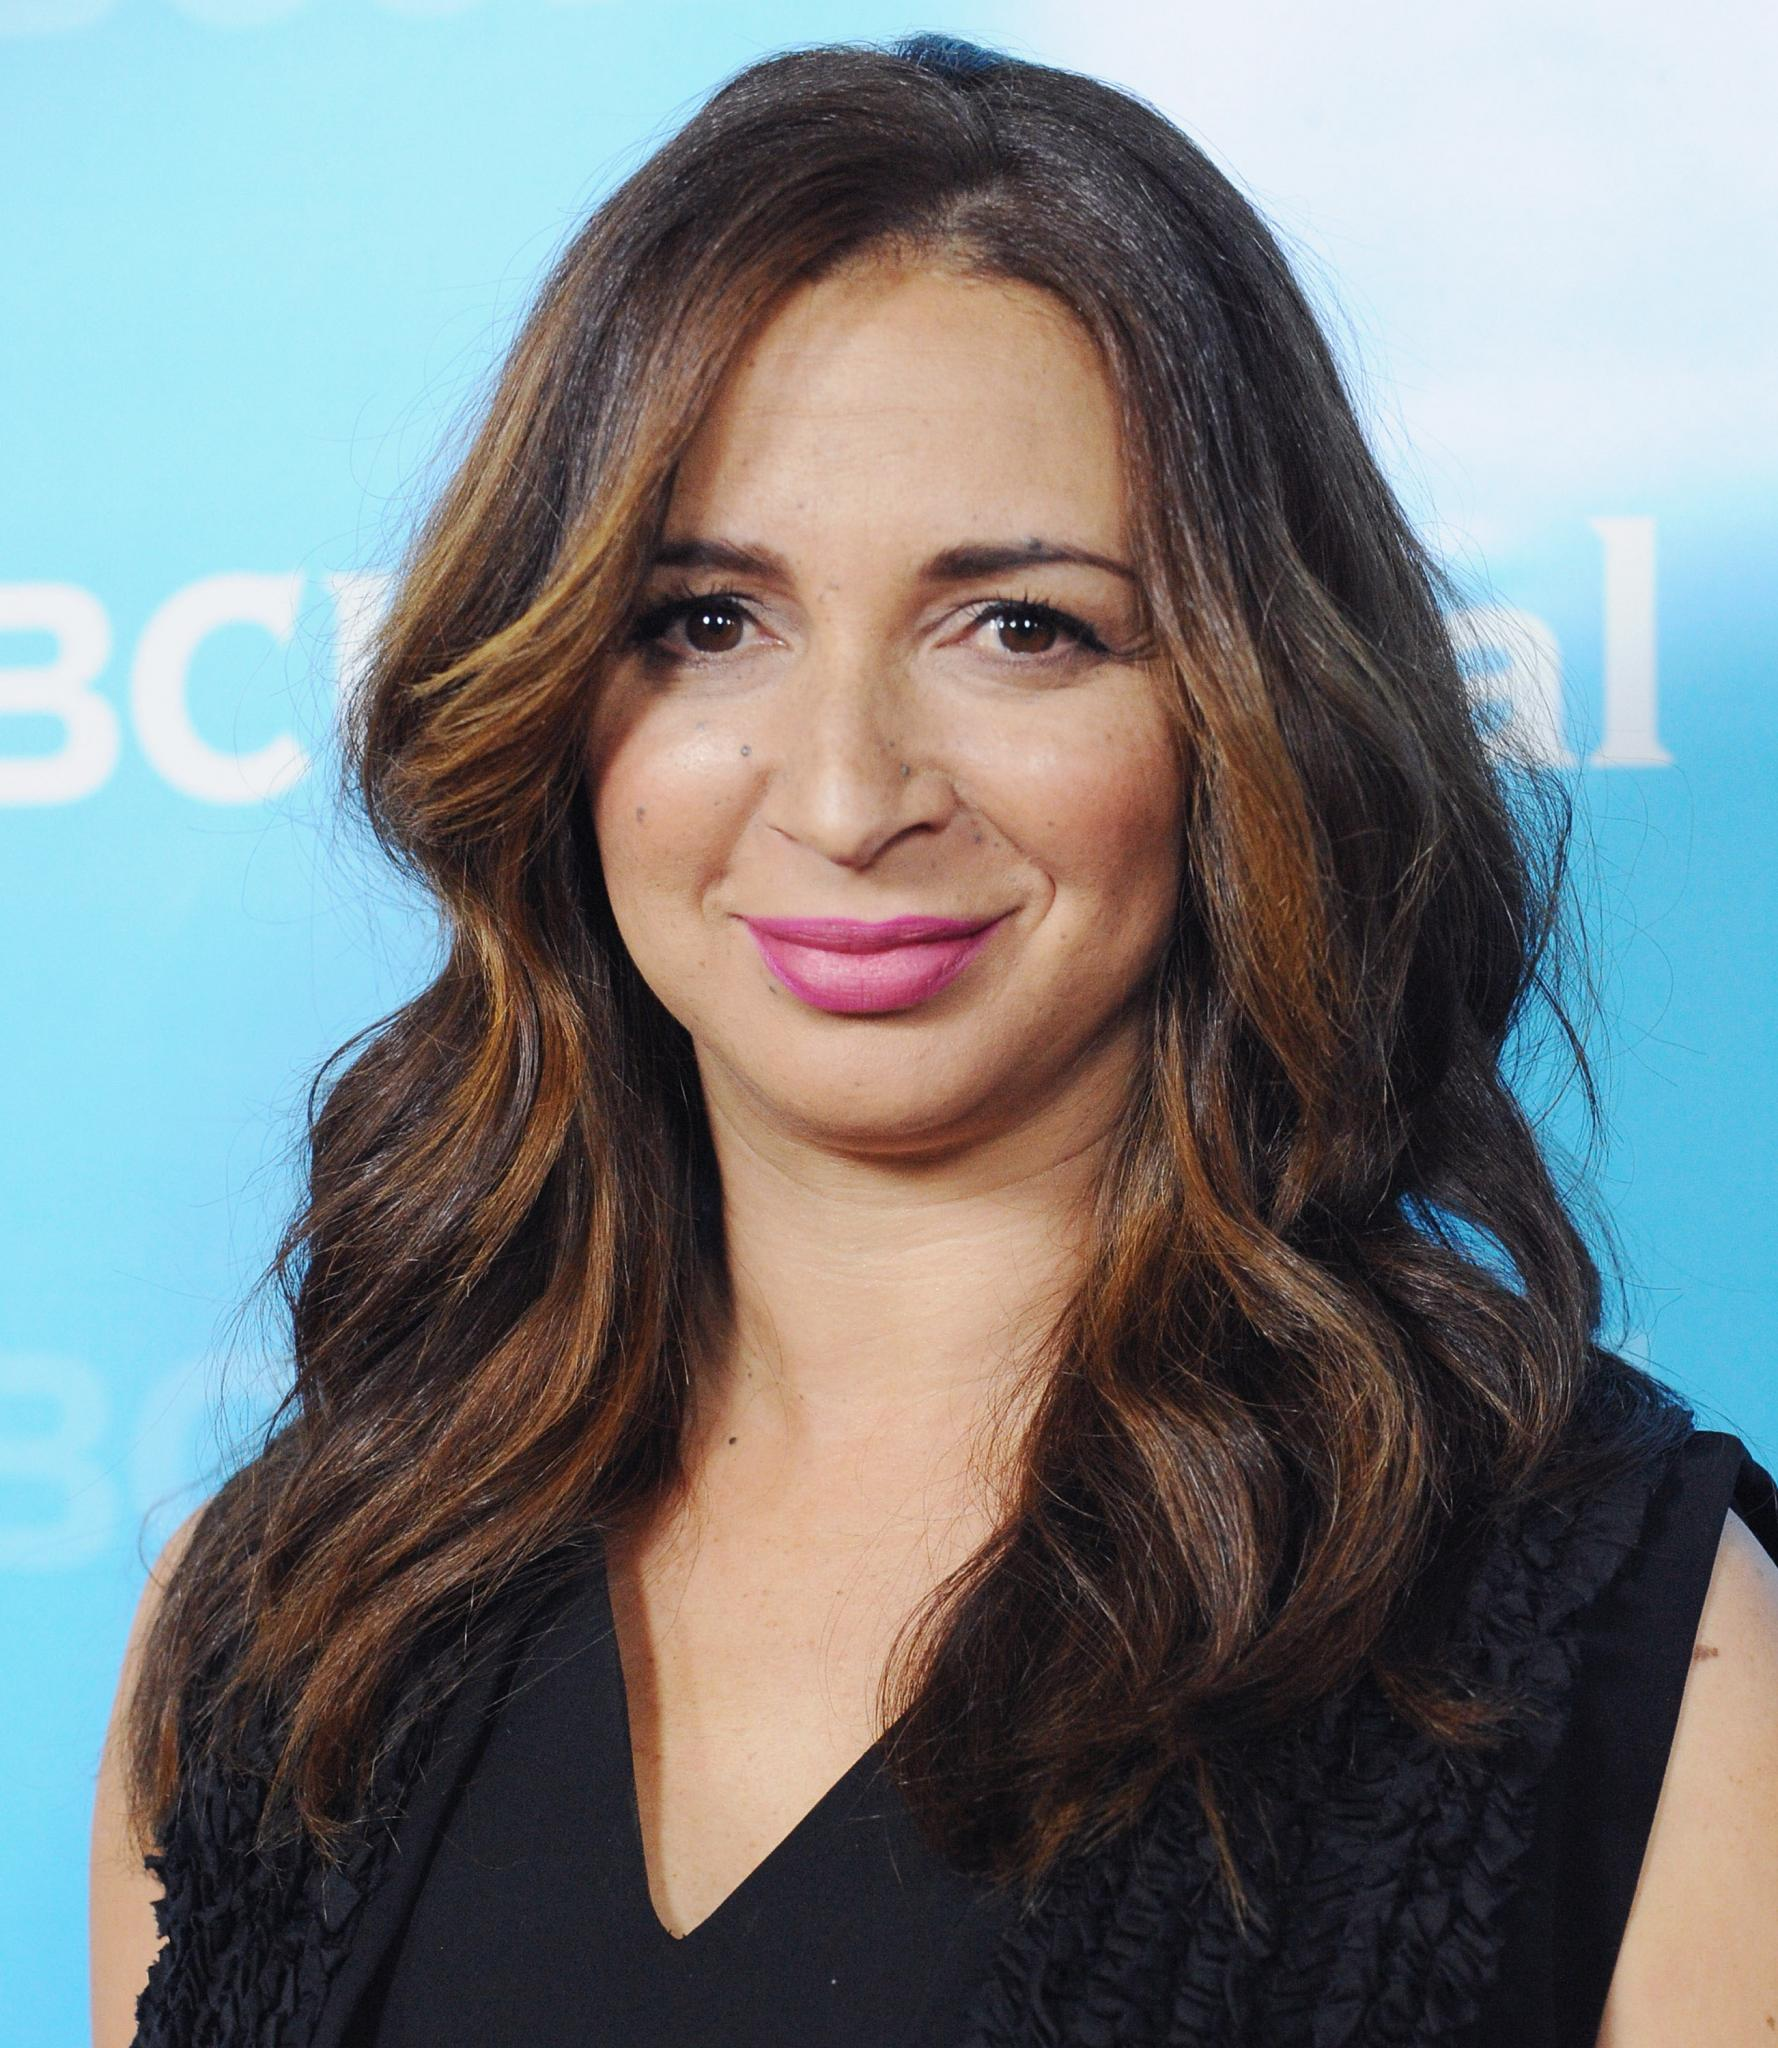 Maya Rudolph Learns About Her Ancestors in 'Finding Your Roots'